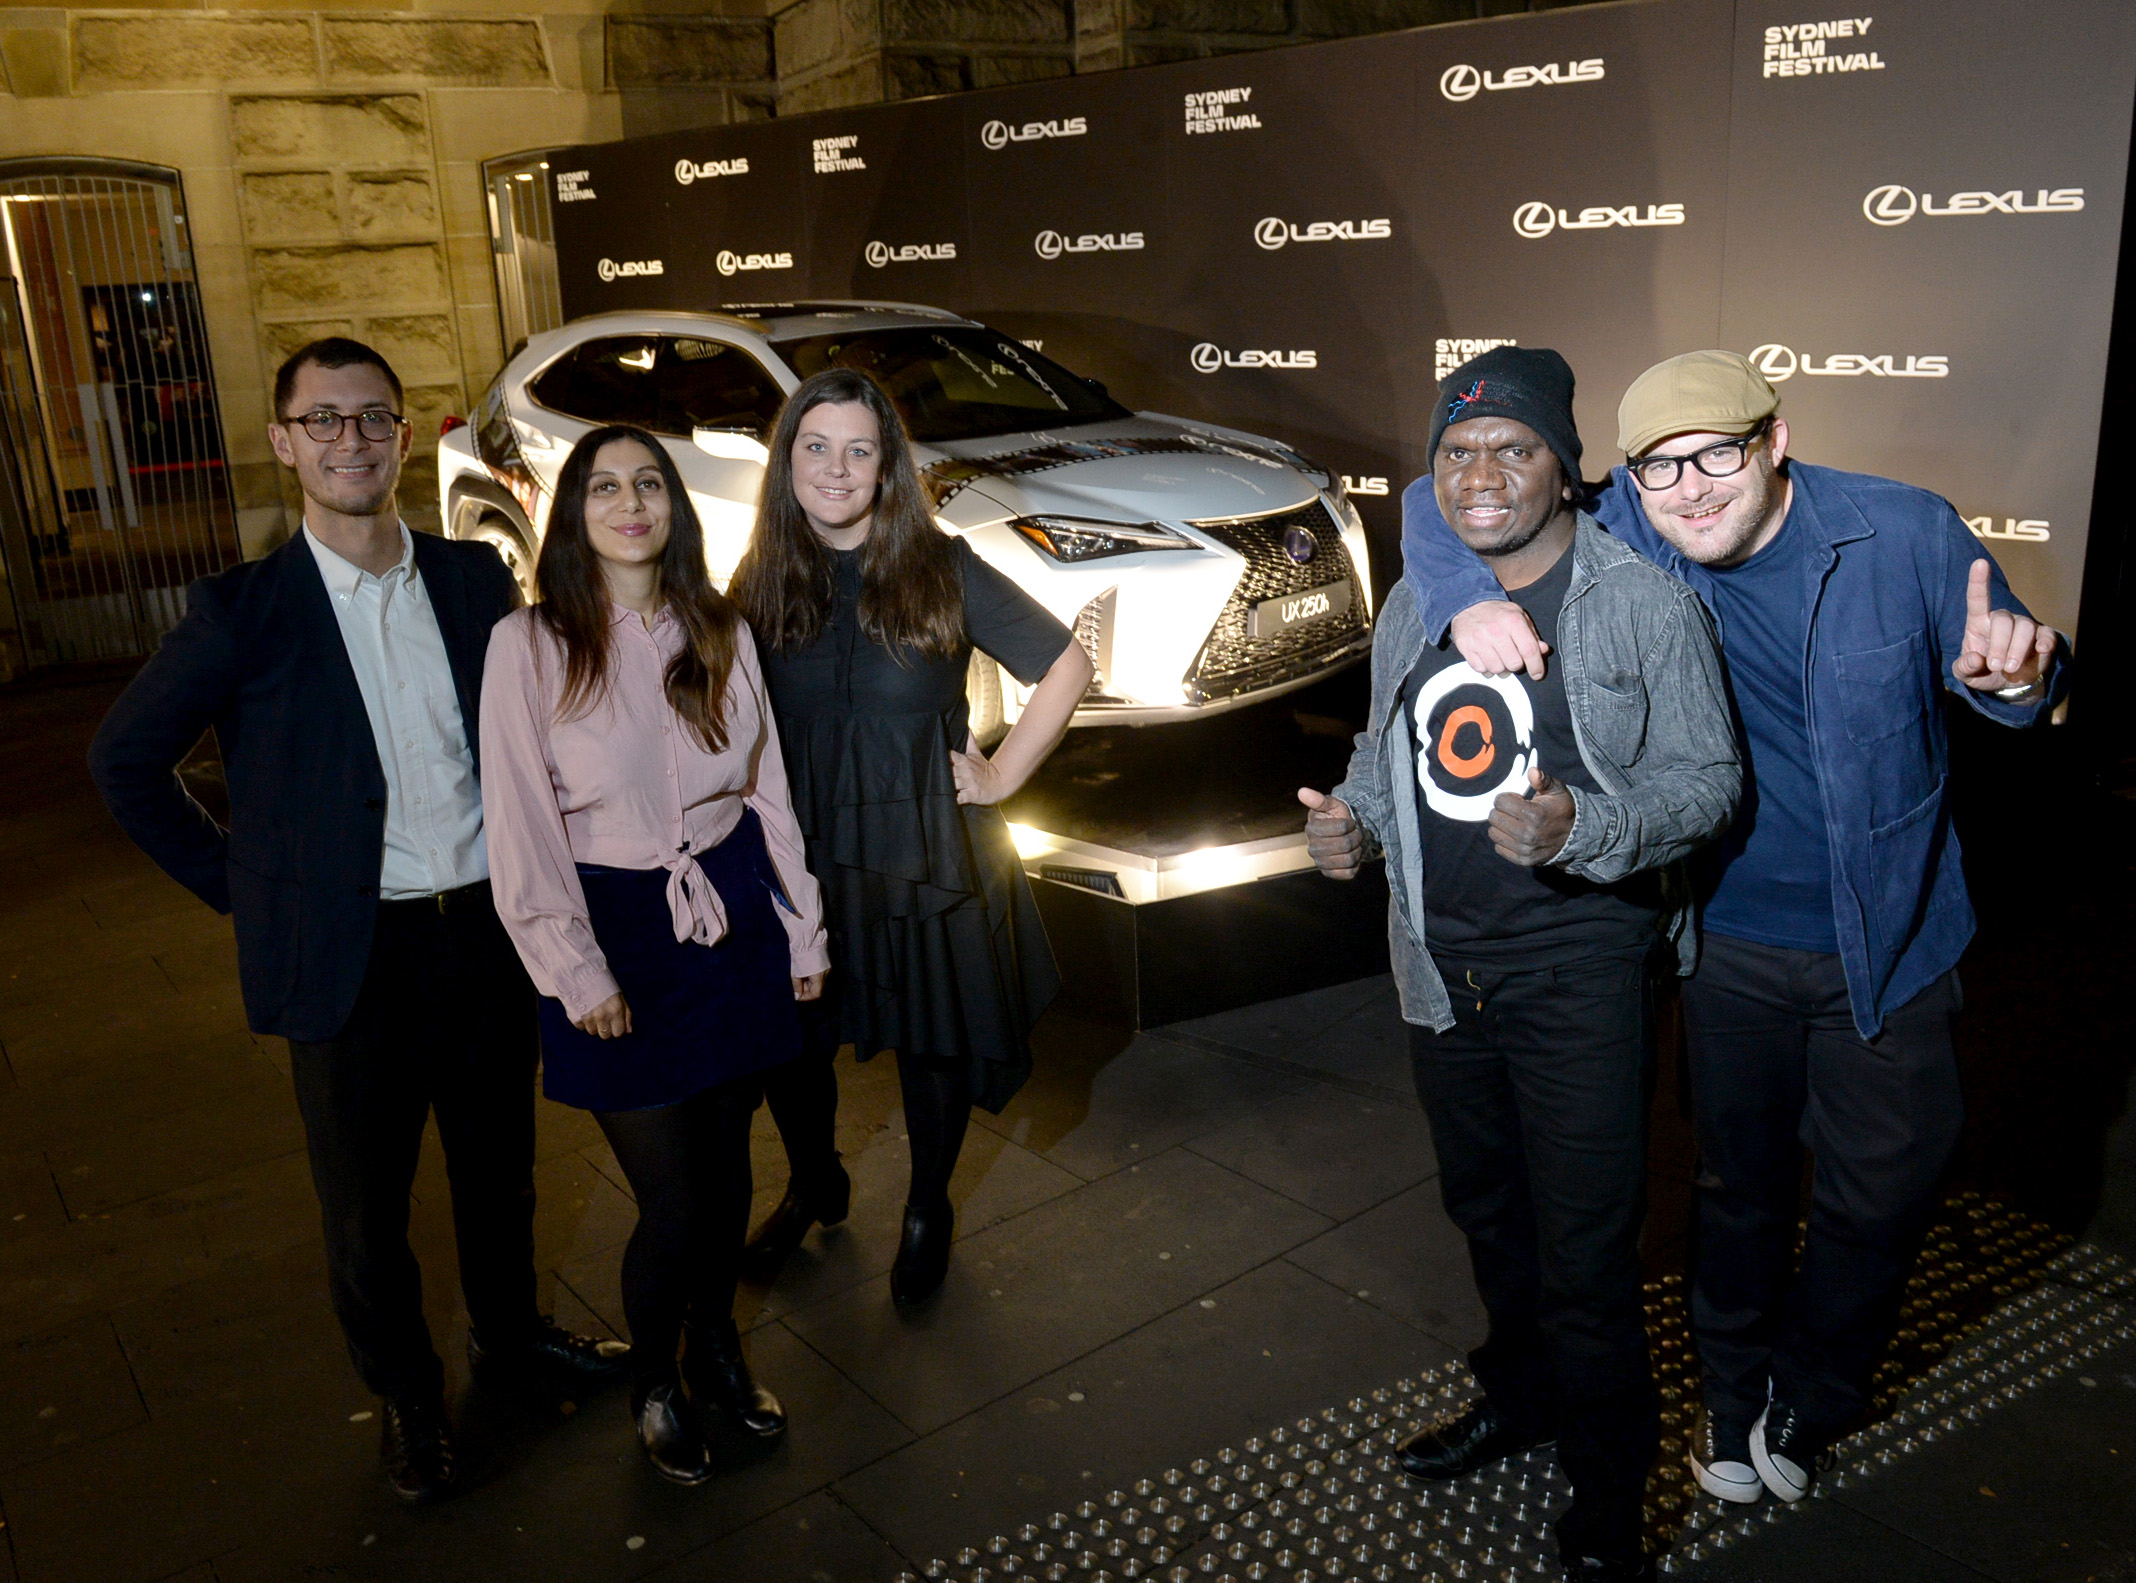 Pictured alongside the other 2018 Lexus Australia Short Film Fellowship recipients, Jamieson Pearce, Melissa Anastasi, Curtis Taylor and Nathan Mewett.